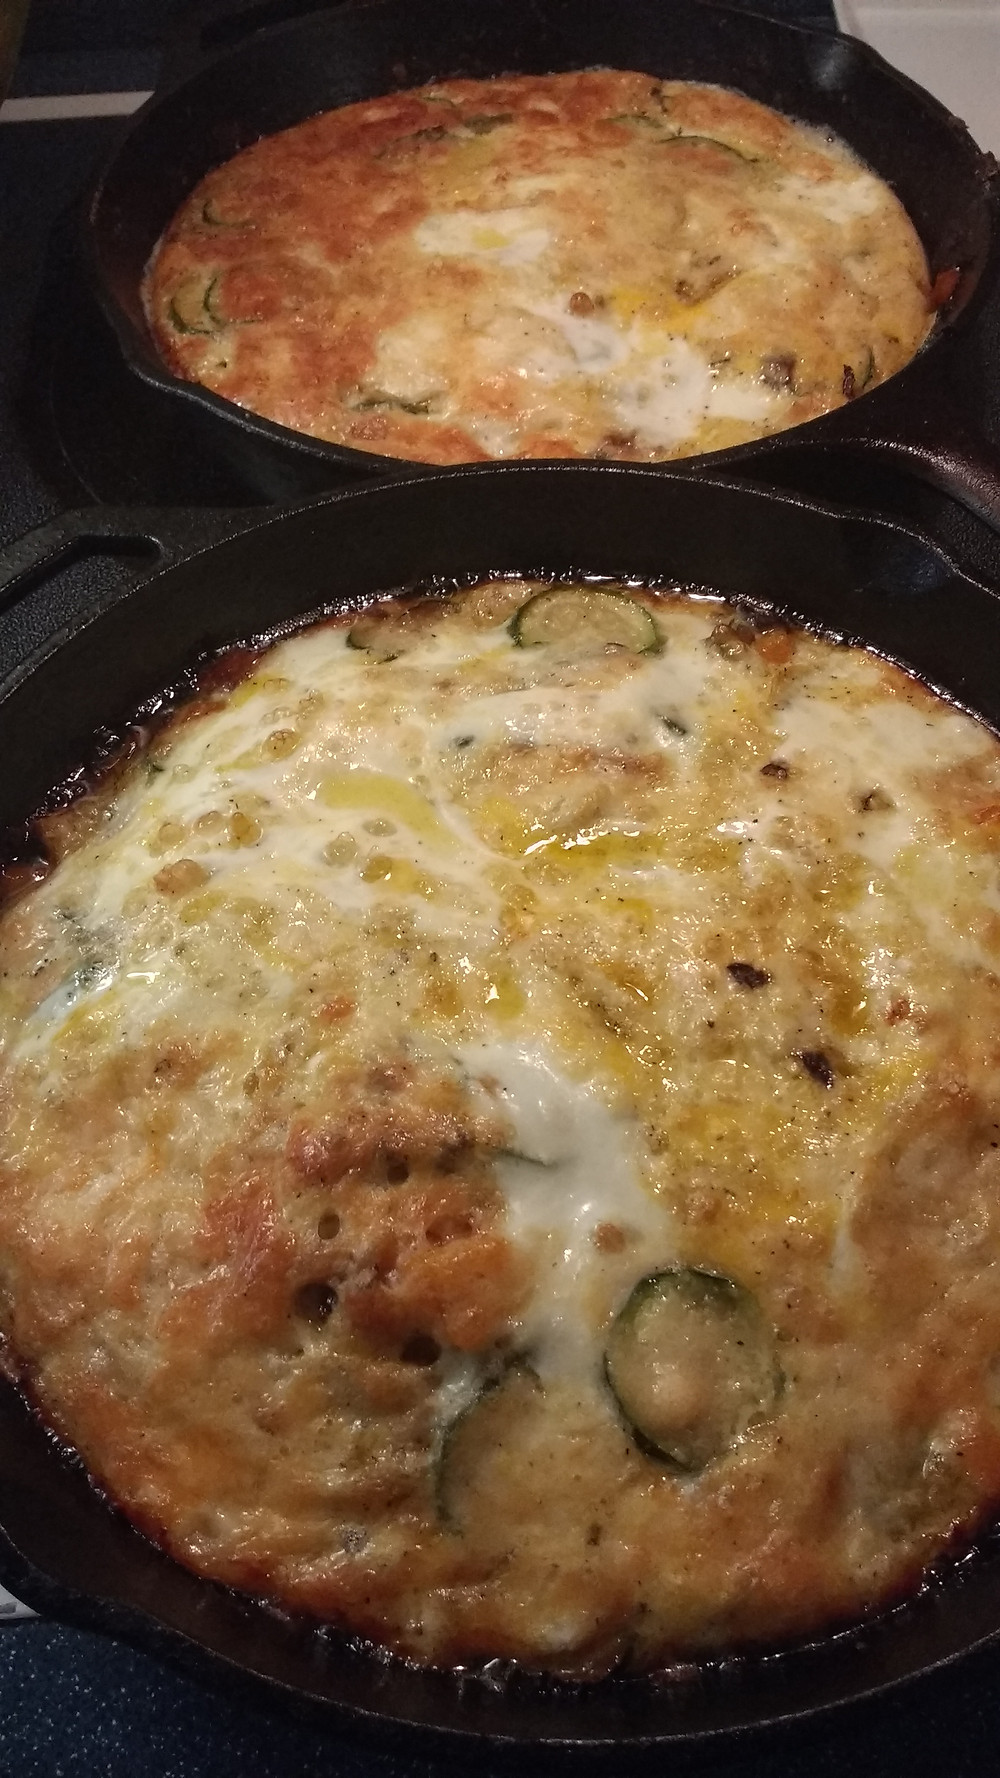 Baked, crustless quiche with summer squash, orange bell pepper and bella mushrooms